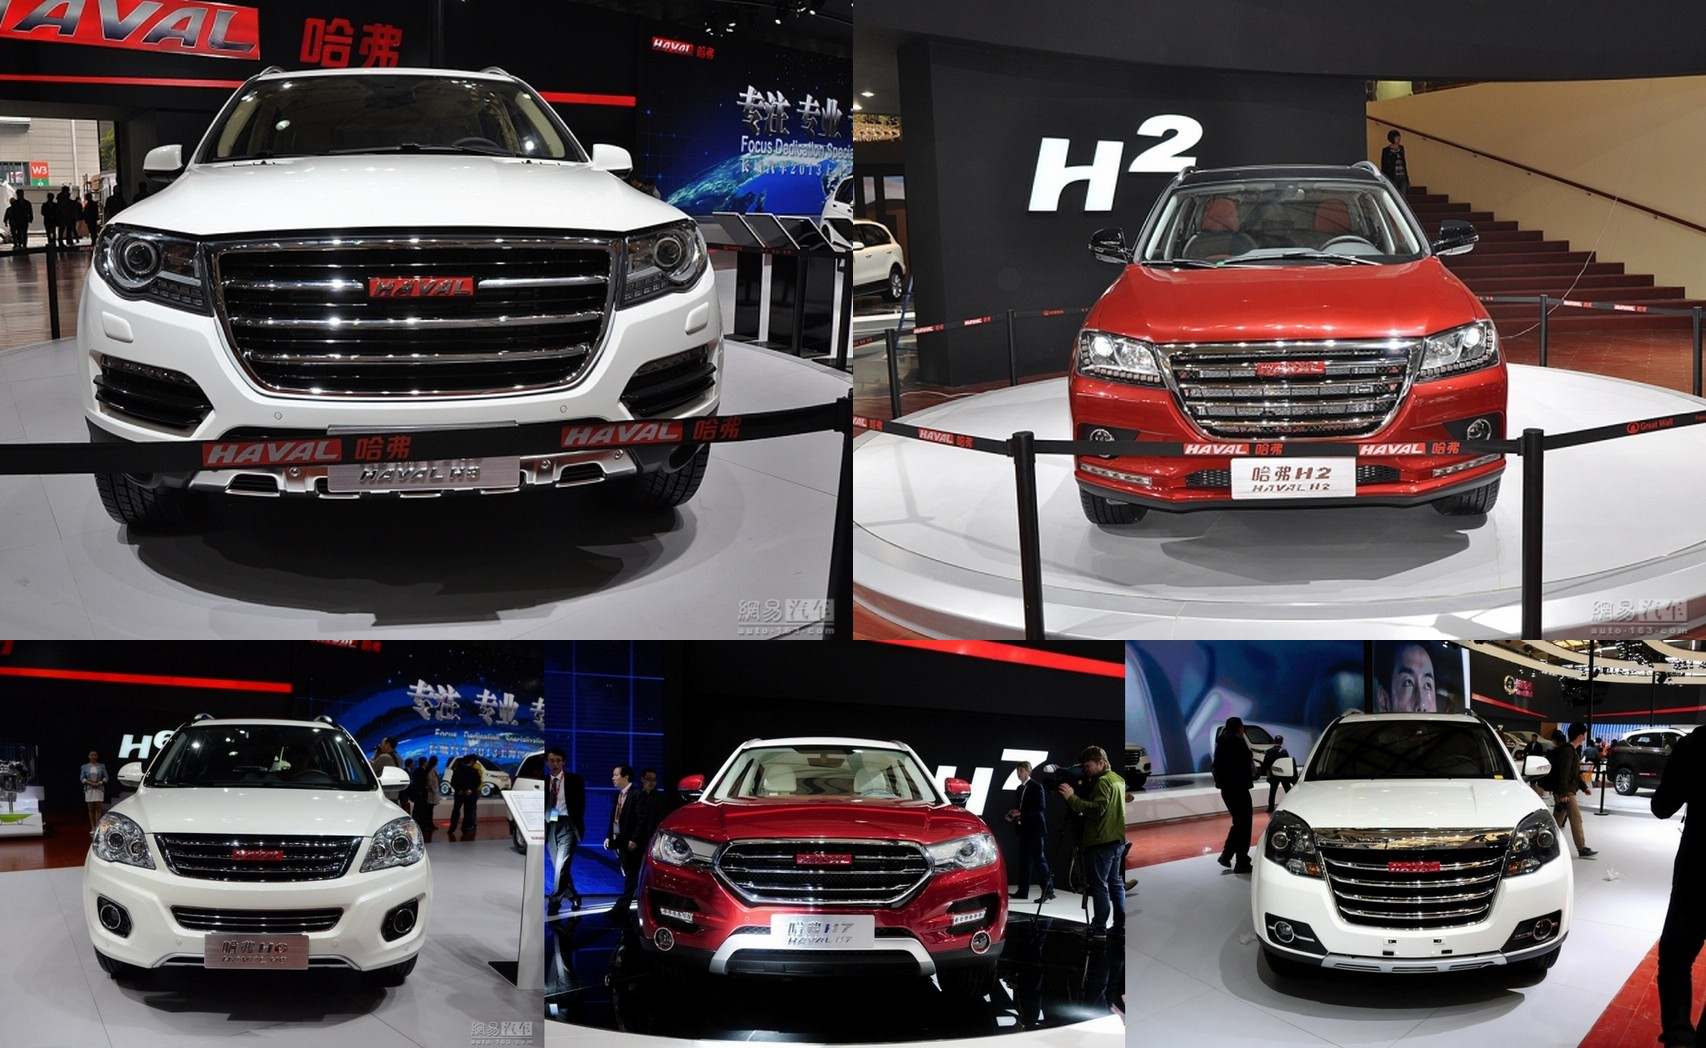 1721-great-wall-haval-h2-h5-h6-h7-h8-2013